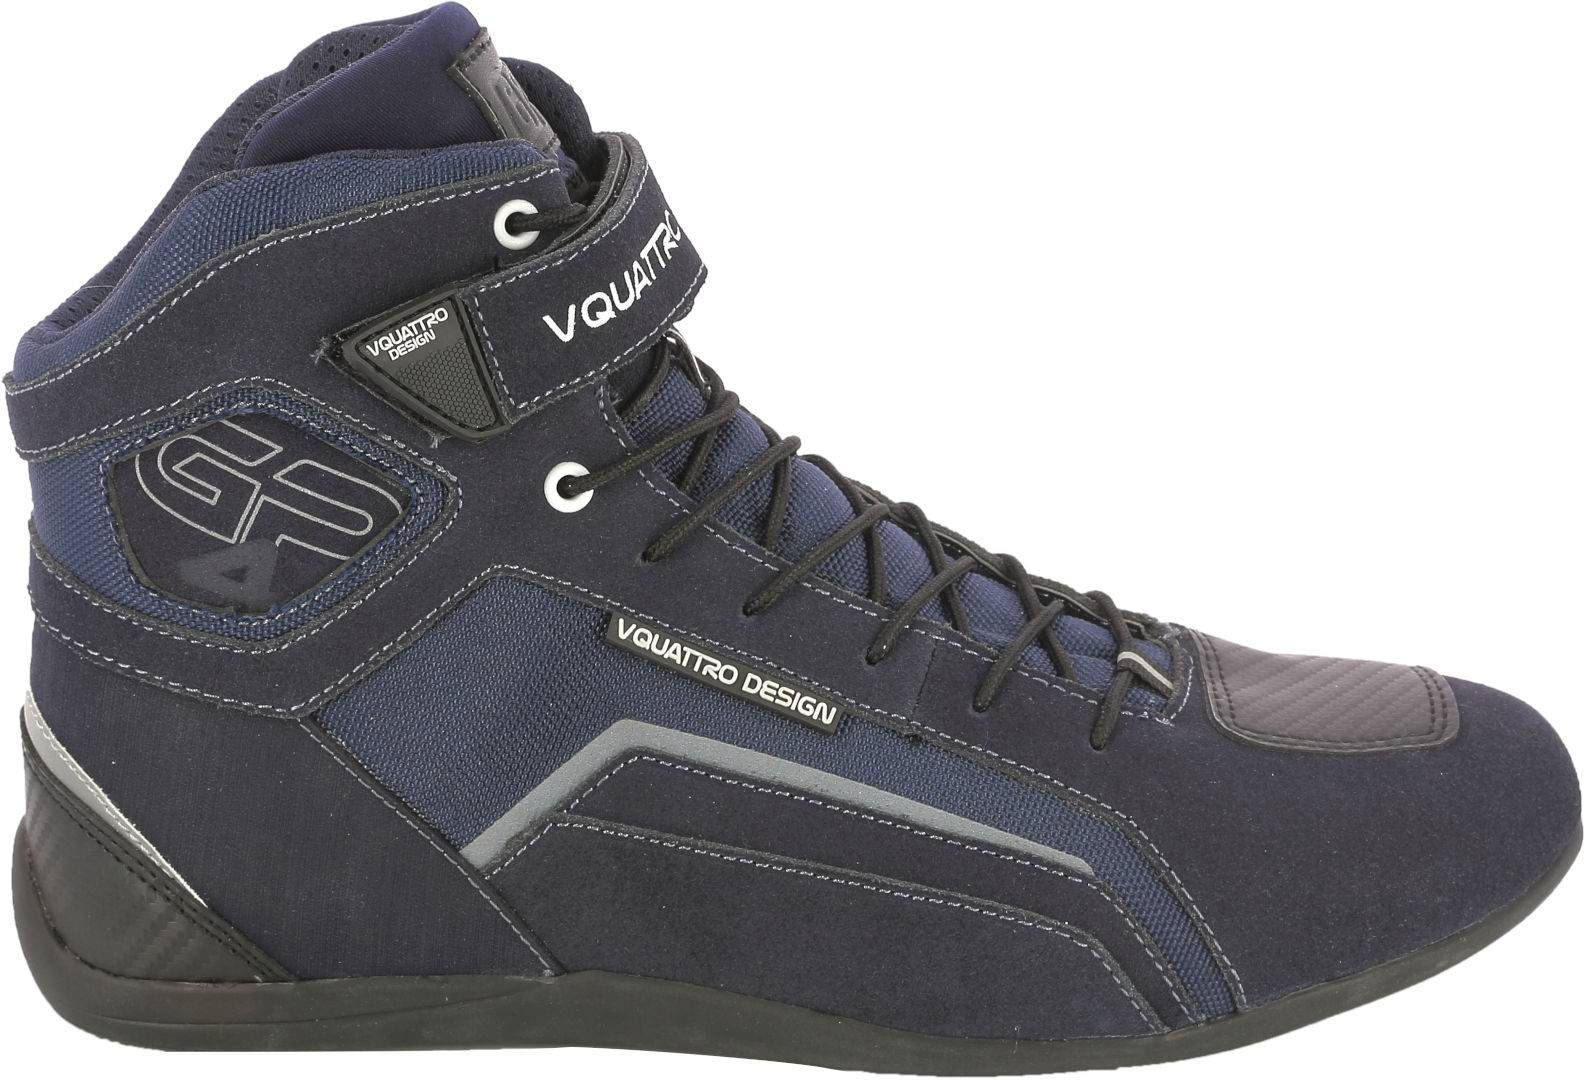 VQuattro GP4 19 Motorcycle Shoes  - Size: 45